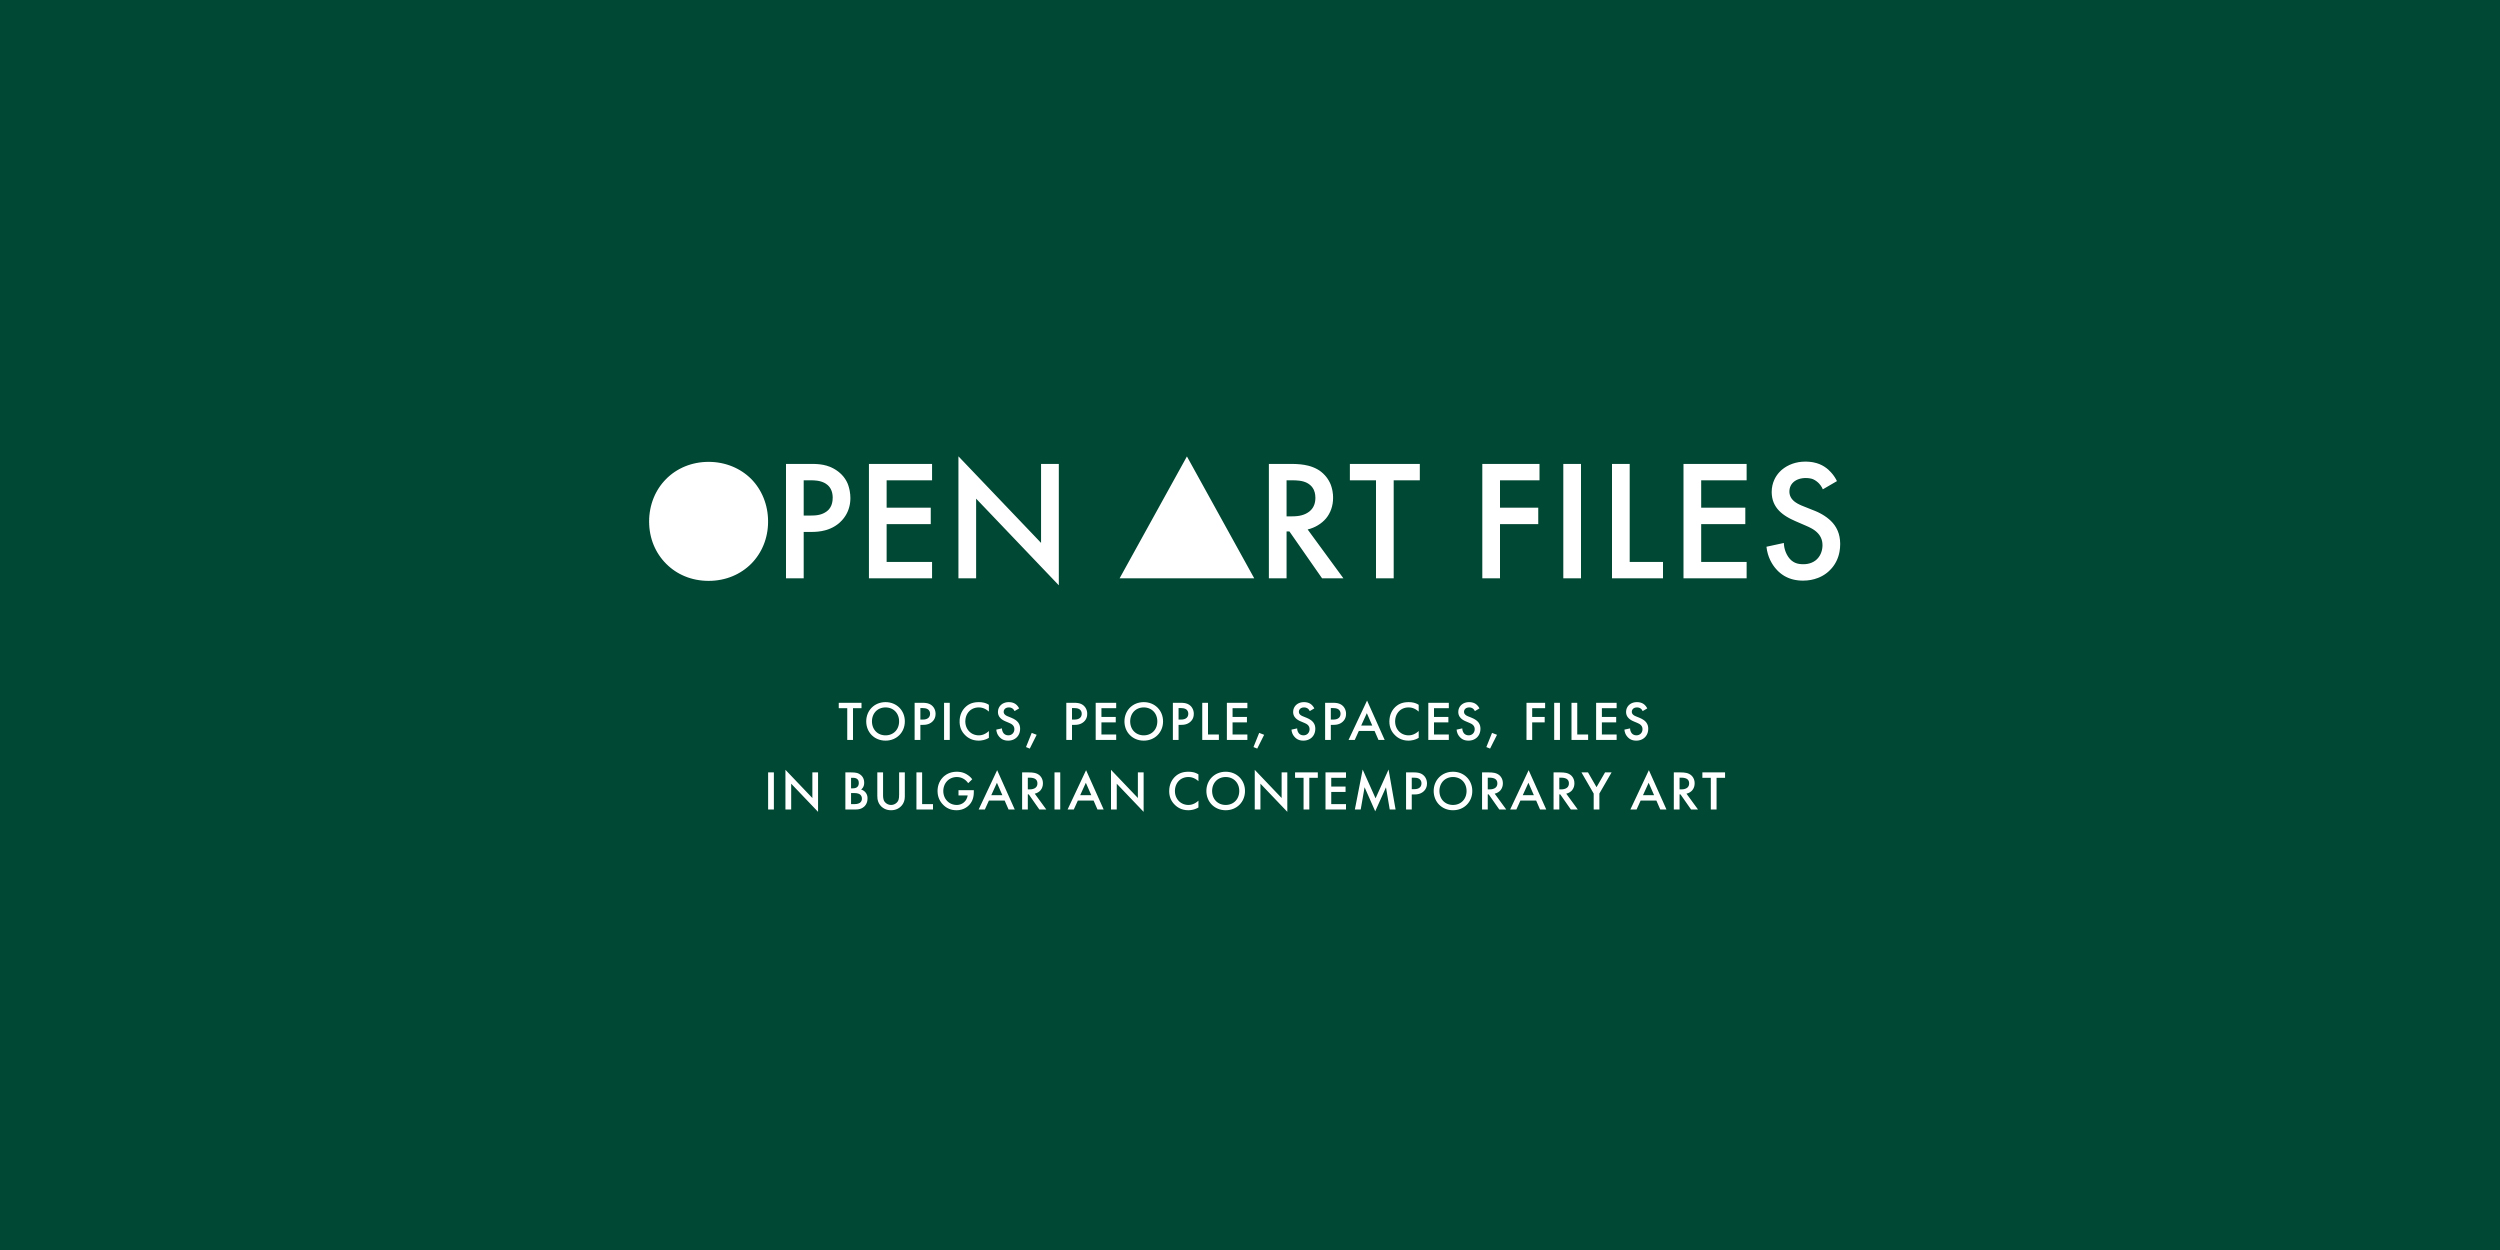 Premiere of the website openartfiles.bg